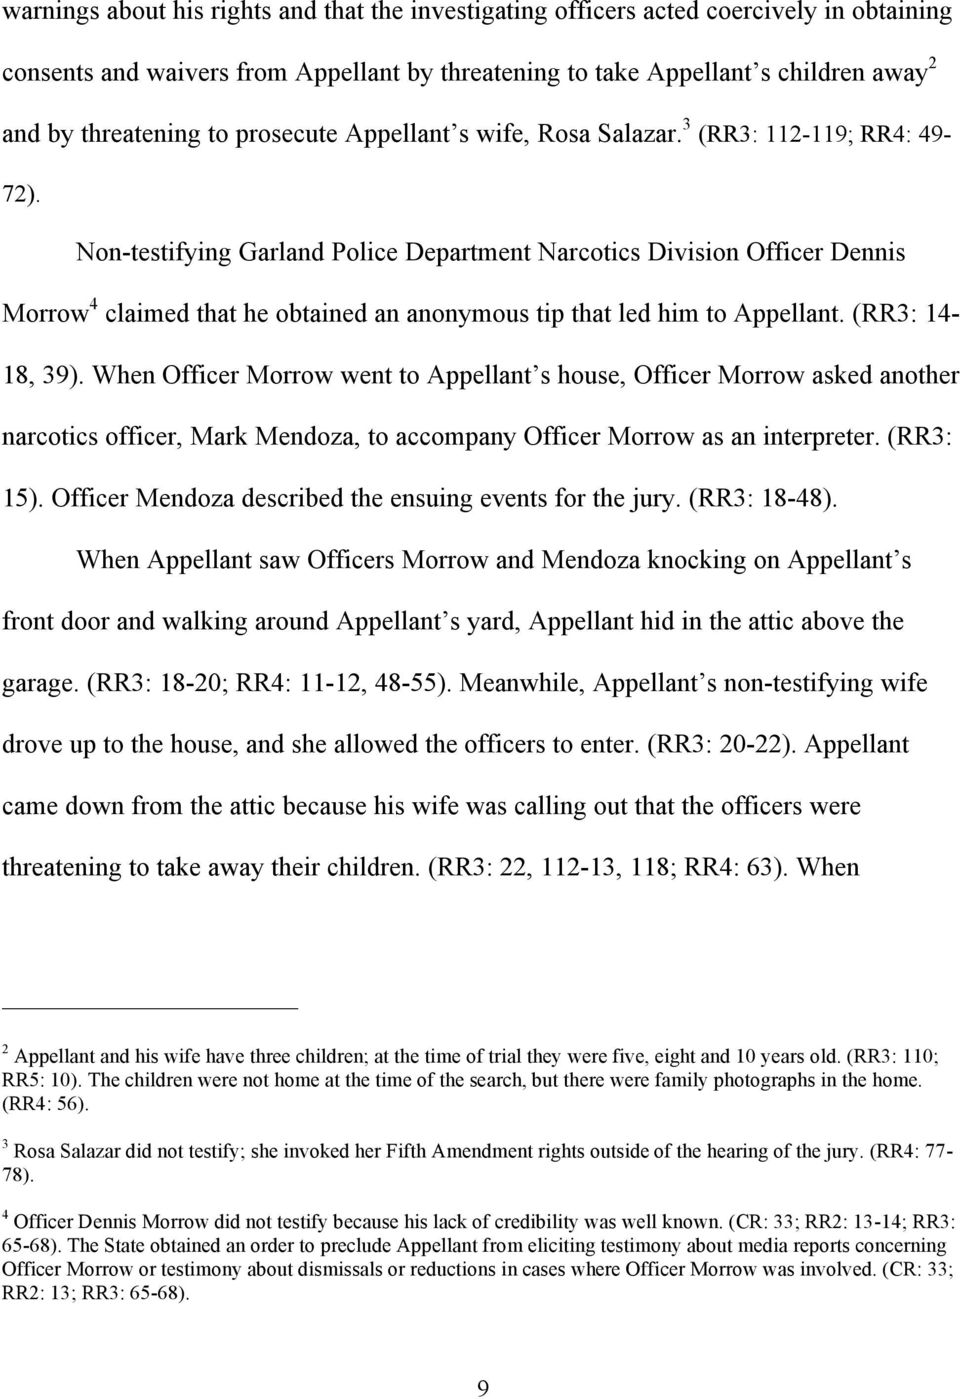 Non-testifying Garland Police Department Narcotics Division Officer Dennis Morrow 4 claimed that he obtained an anonymous tip that led him to Appellant. (RR3: 14-18, 39).